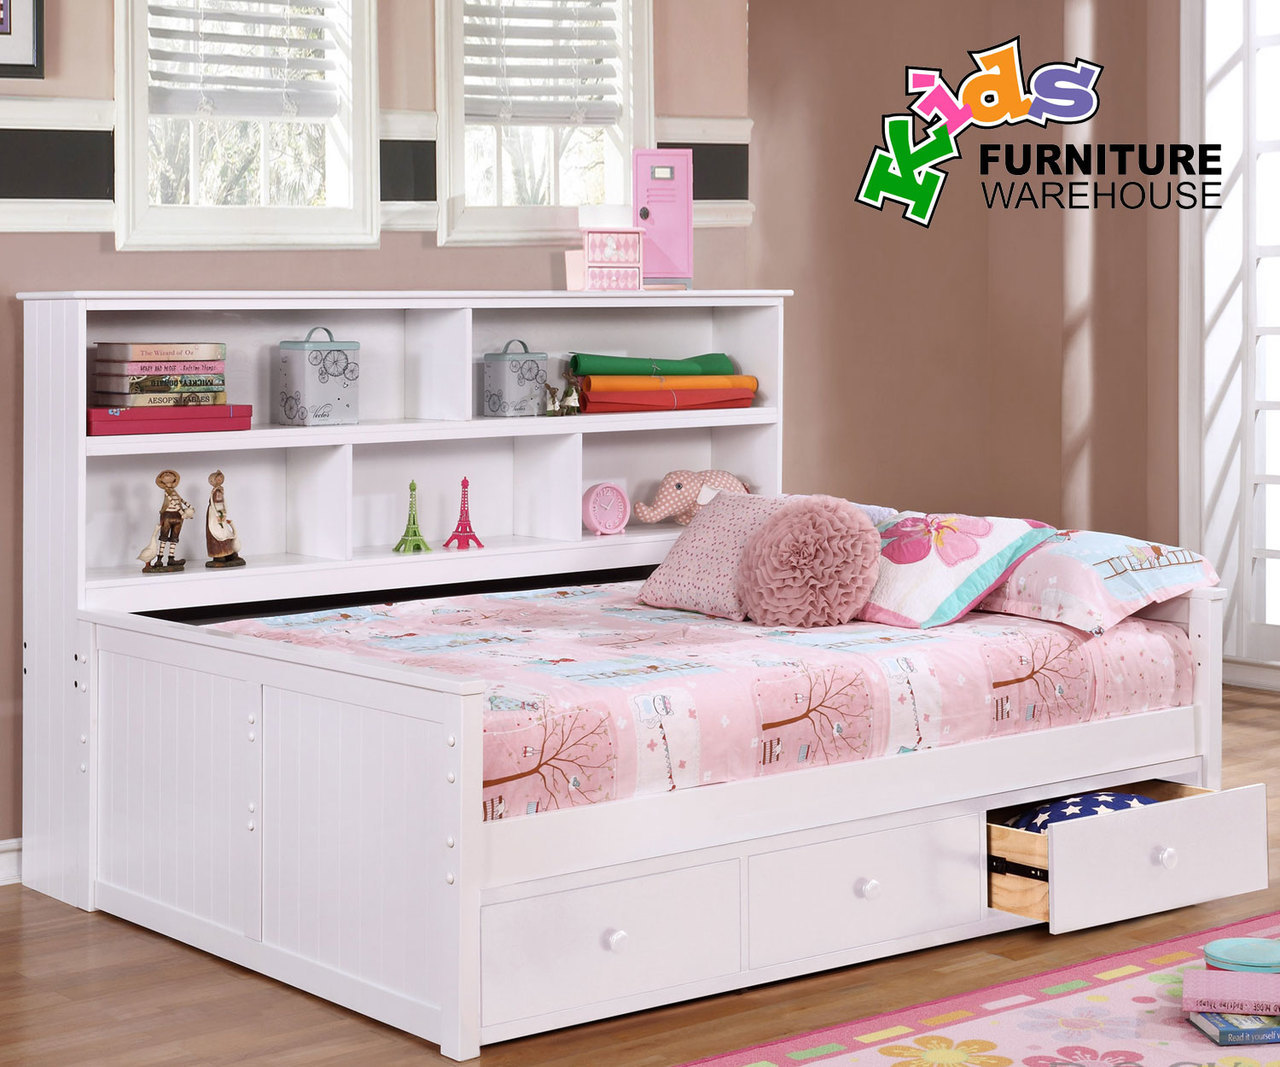 The Best Day Beds For Your Child S Room Or Guest Room Kids Furniture Warehouse